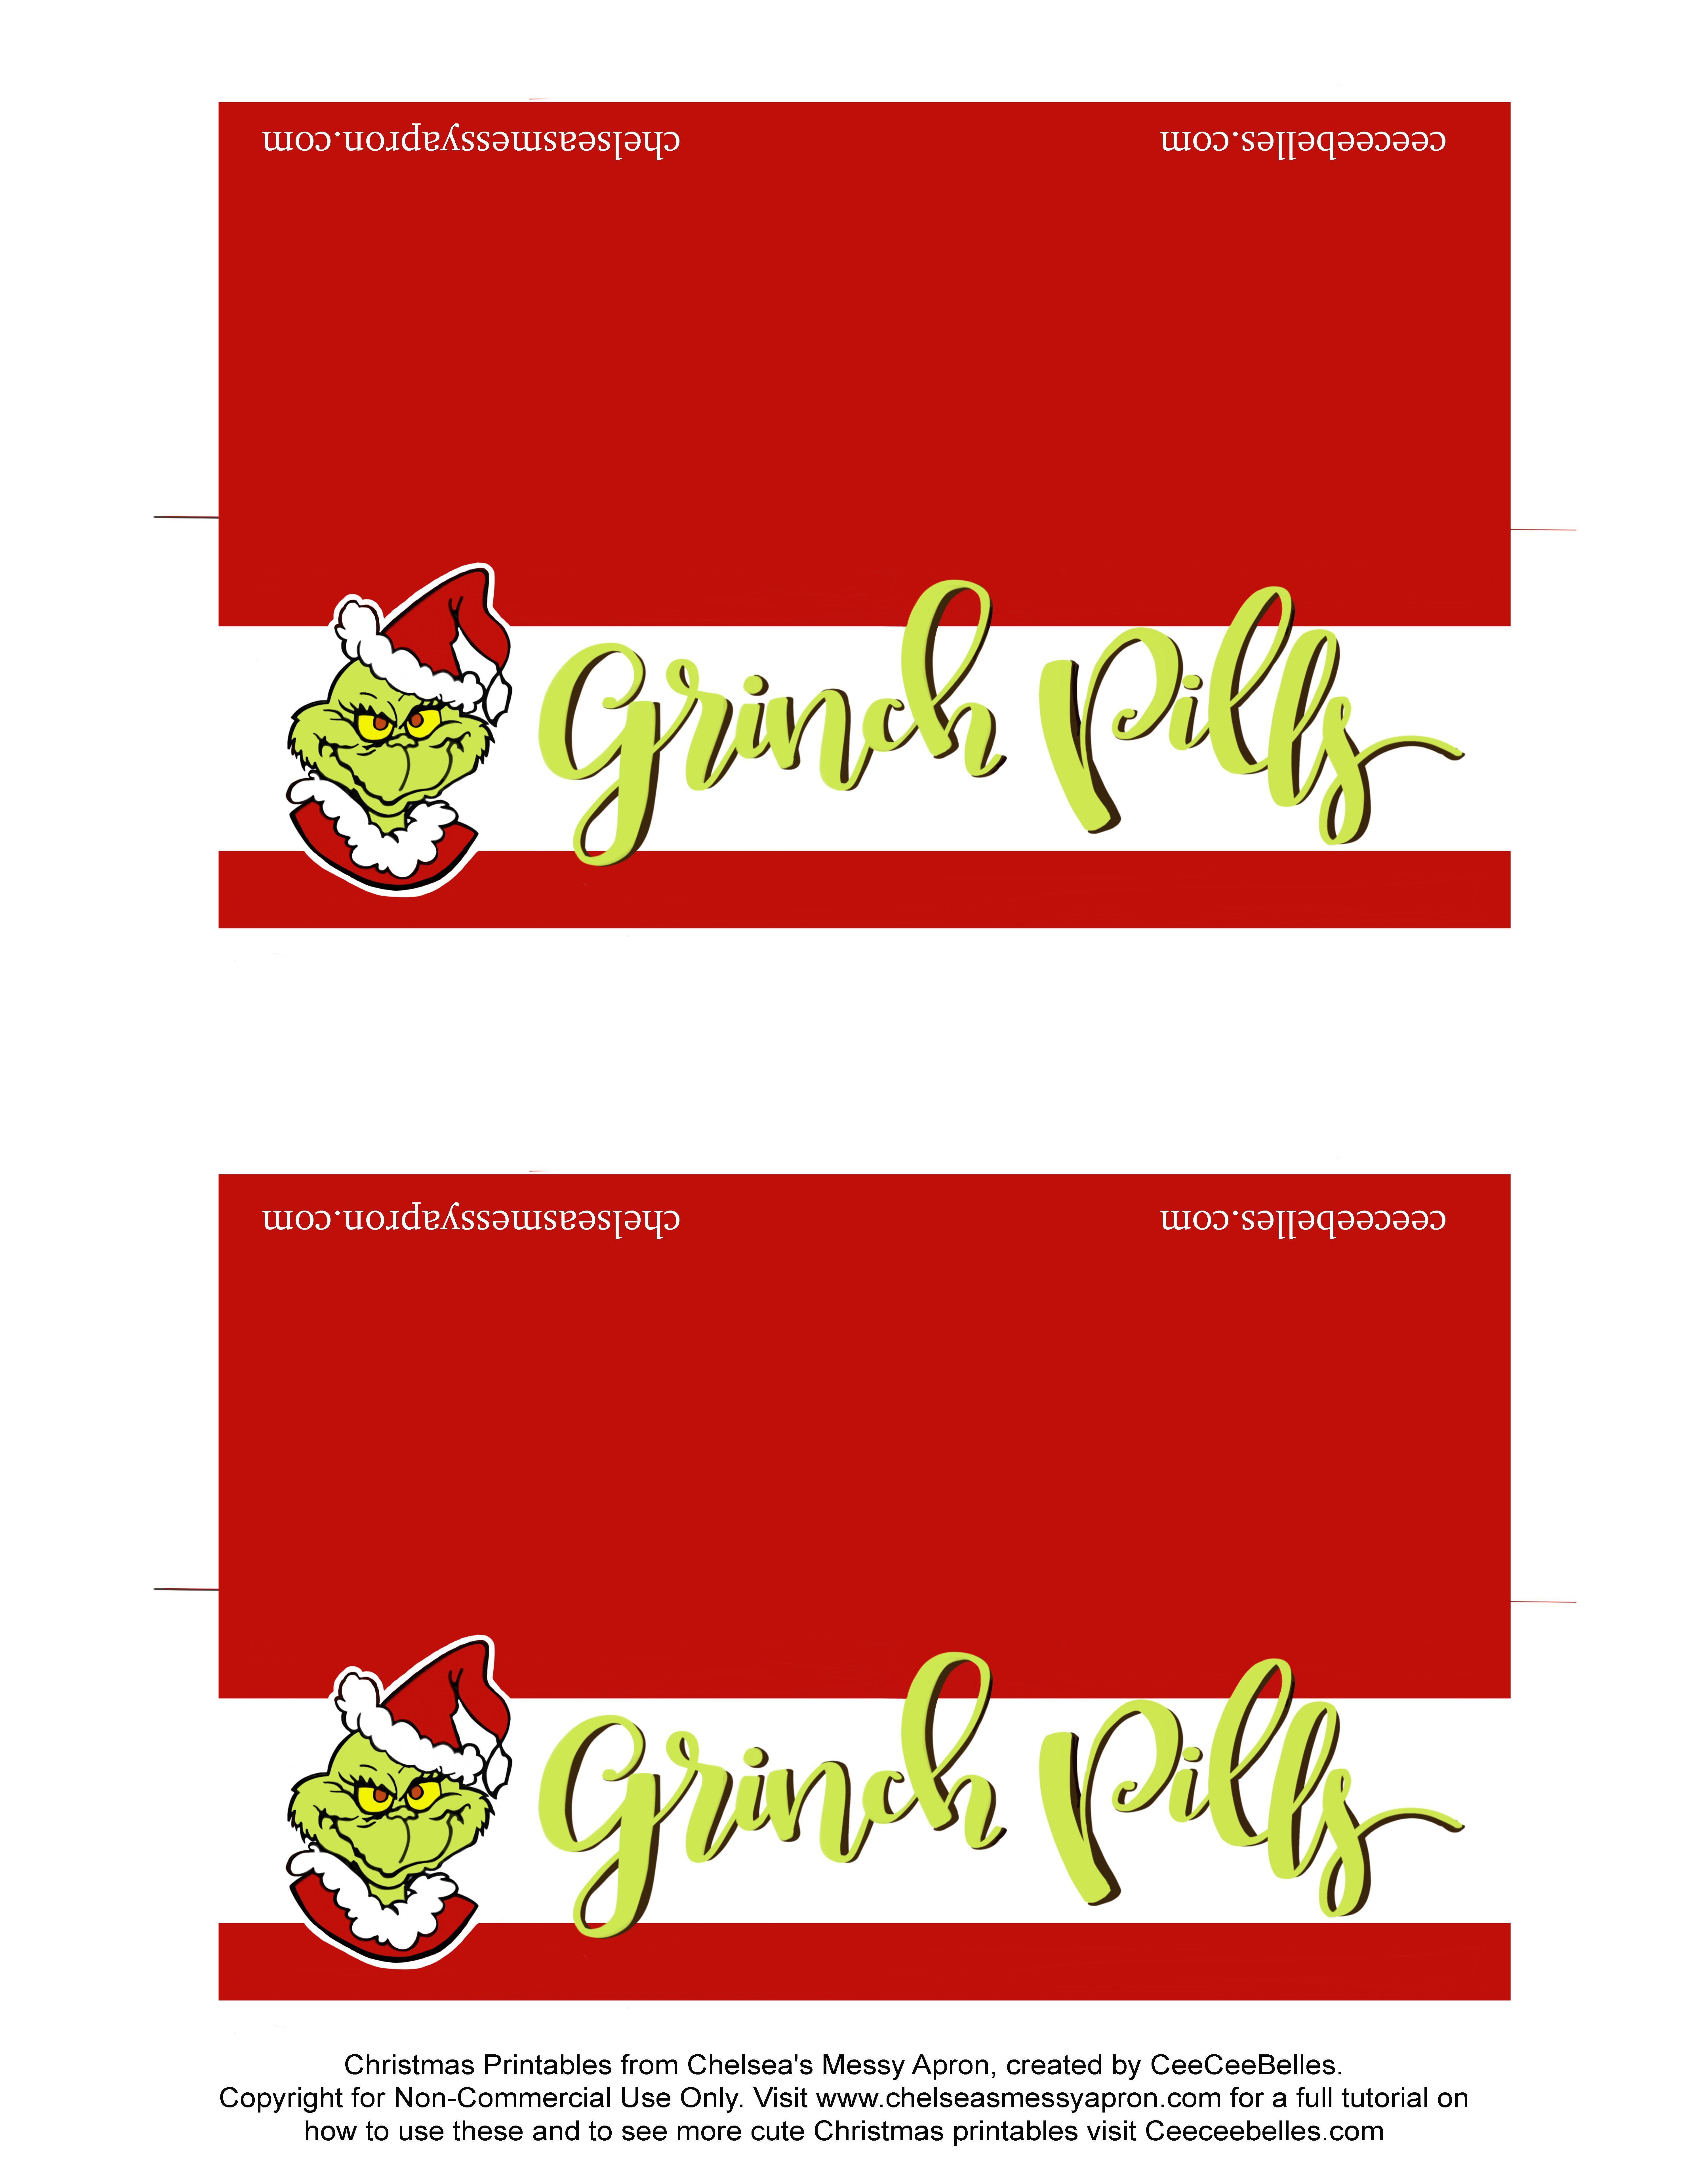 Pincornelia Stone On Christmas | Pinterest | Christmas, Grinch - Grinch Pills Free Printable